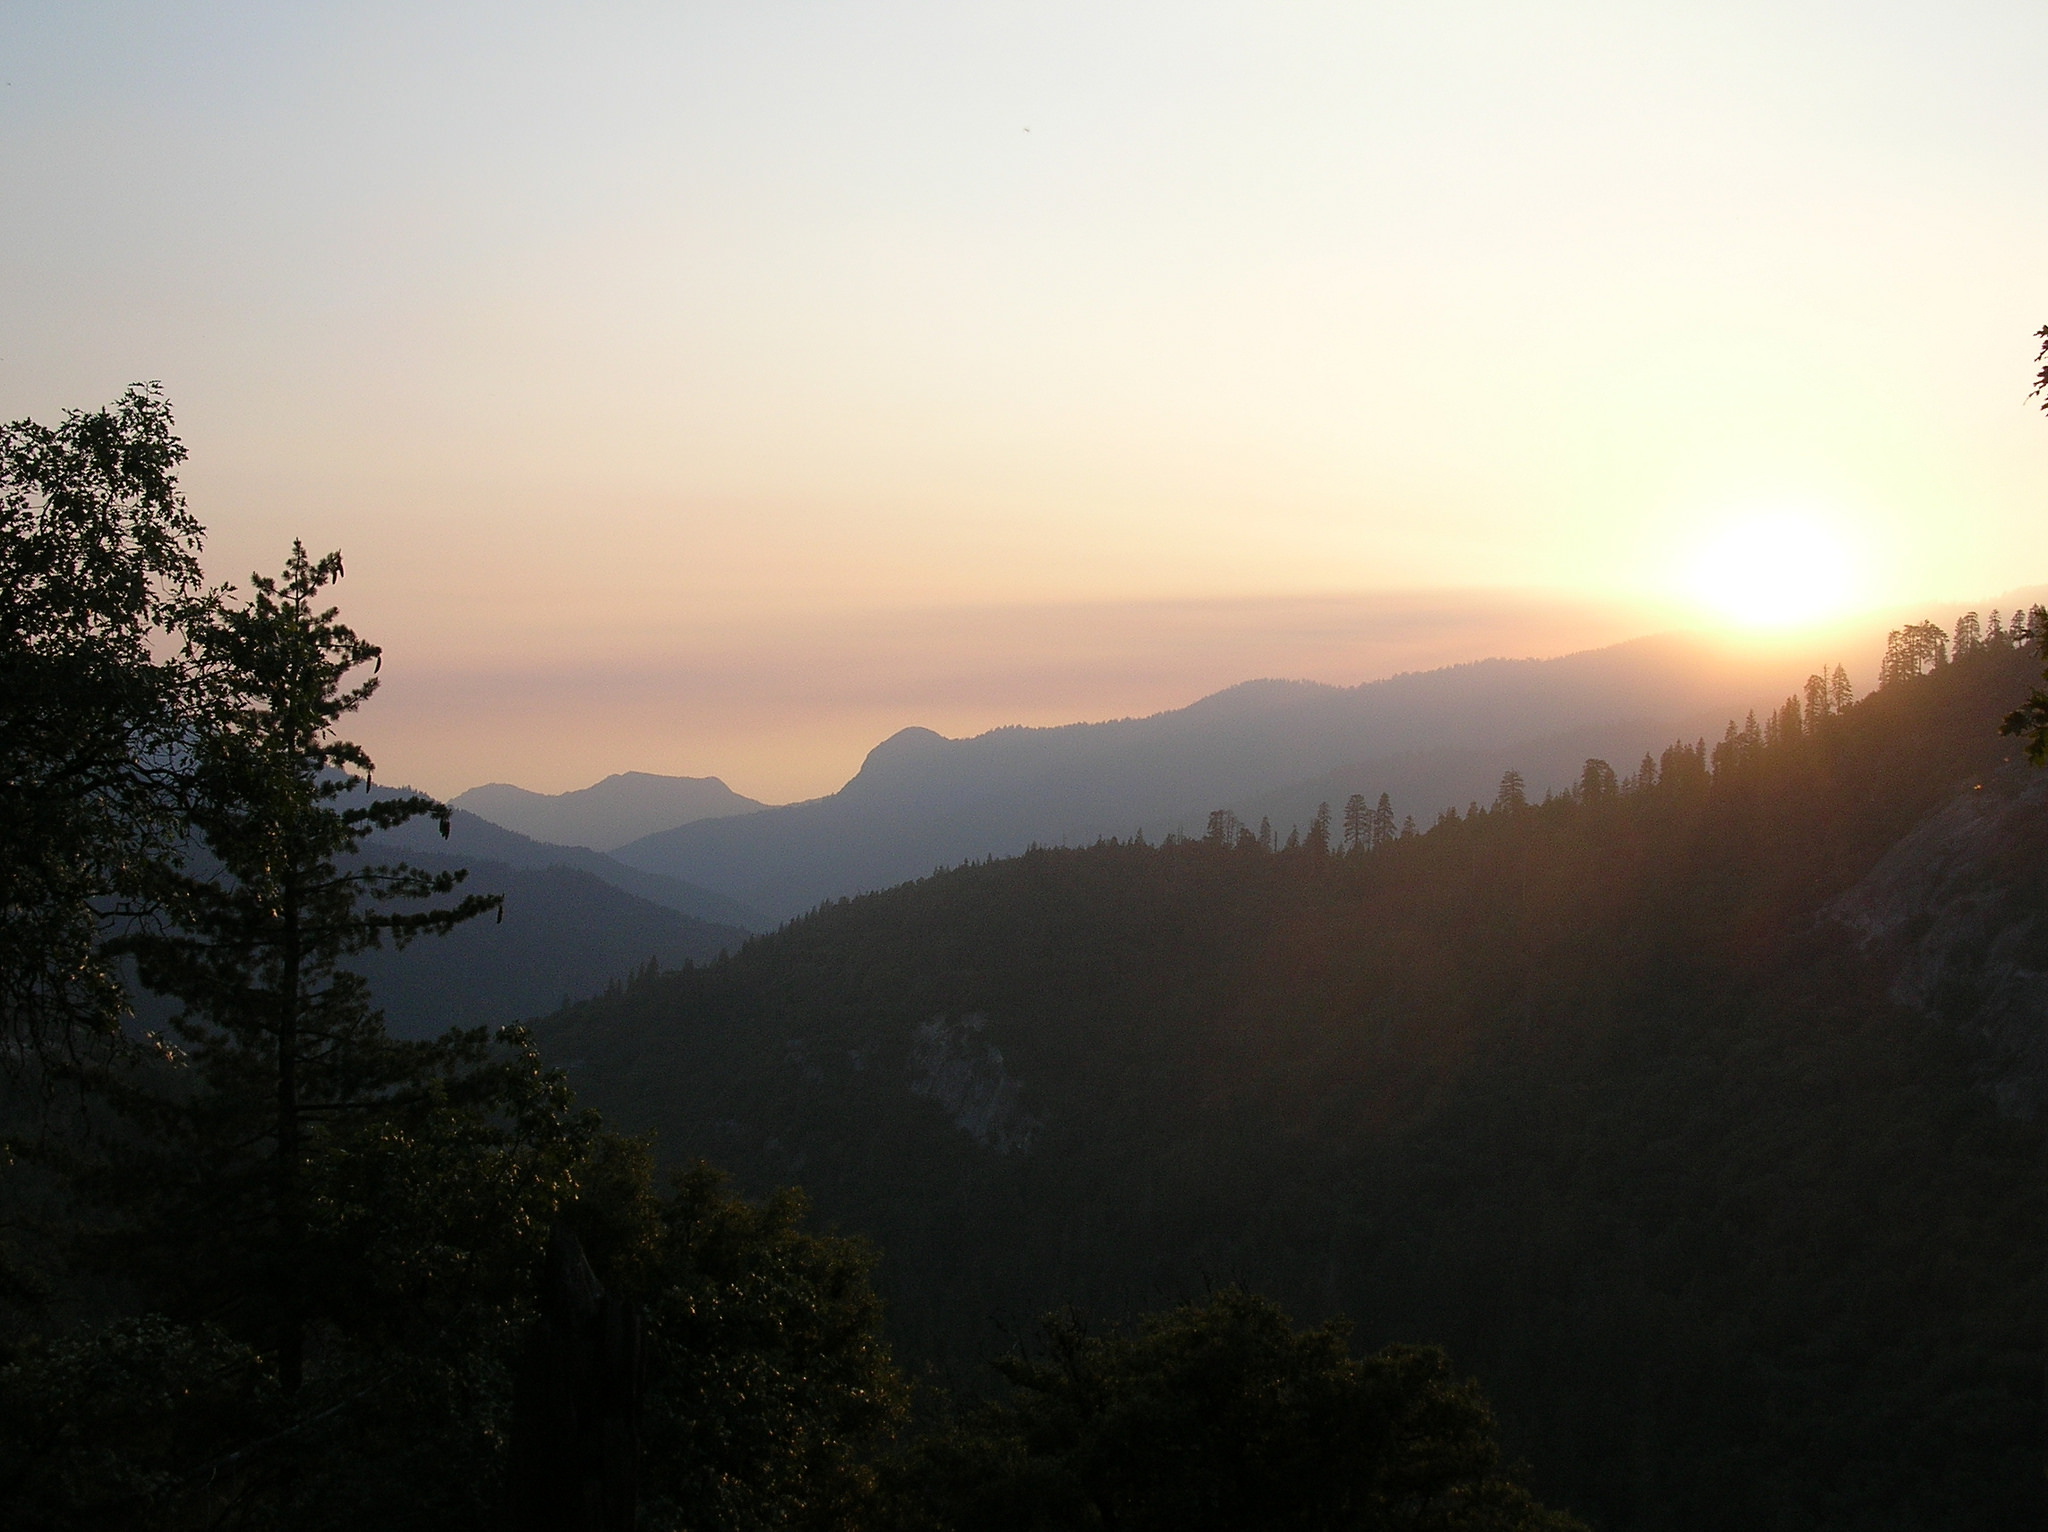 Sequoia National Park at sunset. (Photo: HikingMike/Flickr)